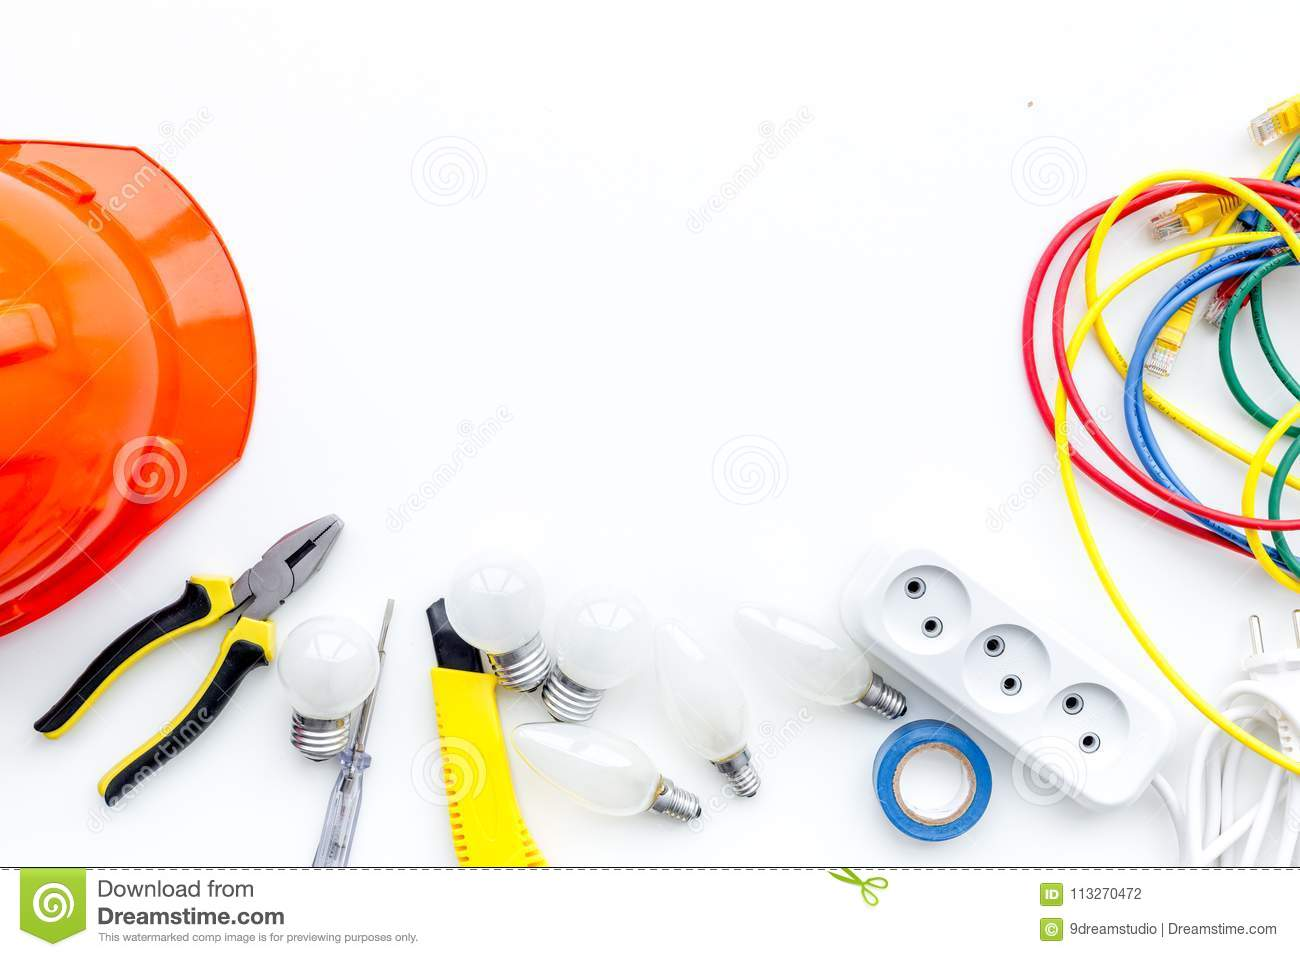 Electrician Work Concept Hard Hat Tools Cabel Socket Outlet On Wiring A White Background